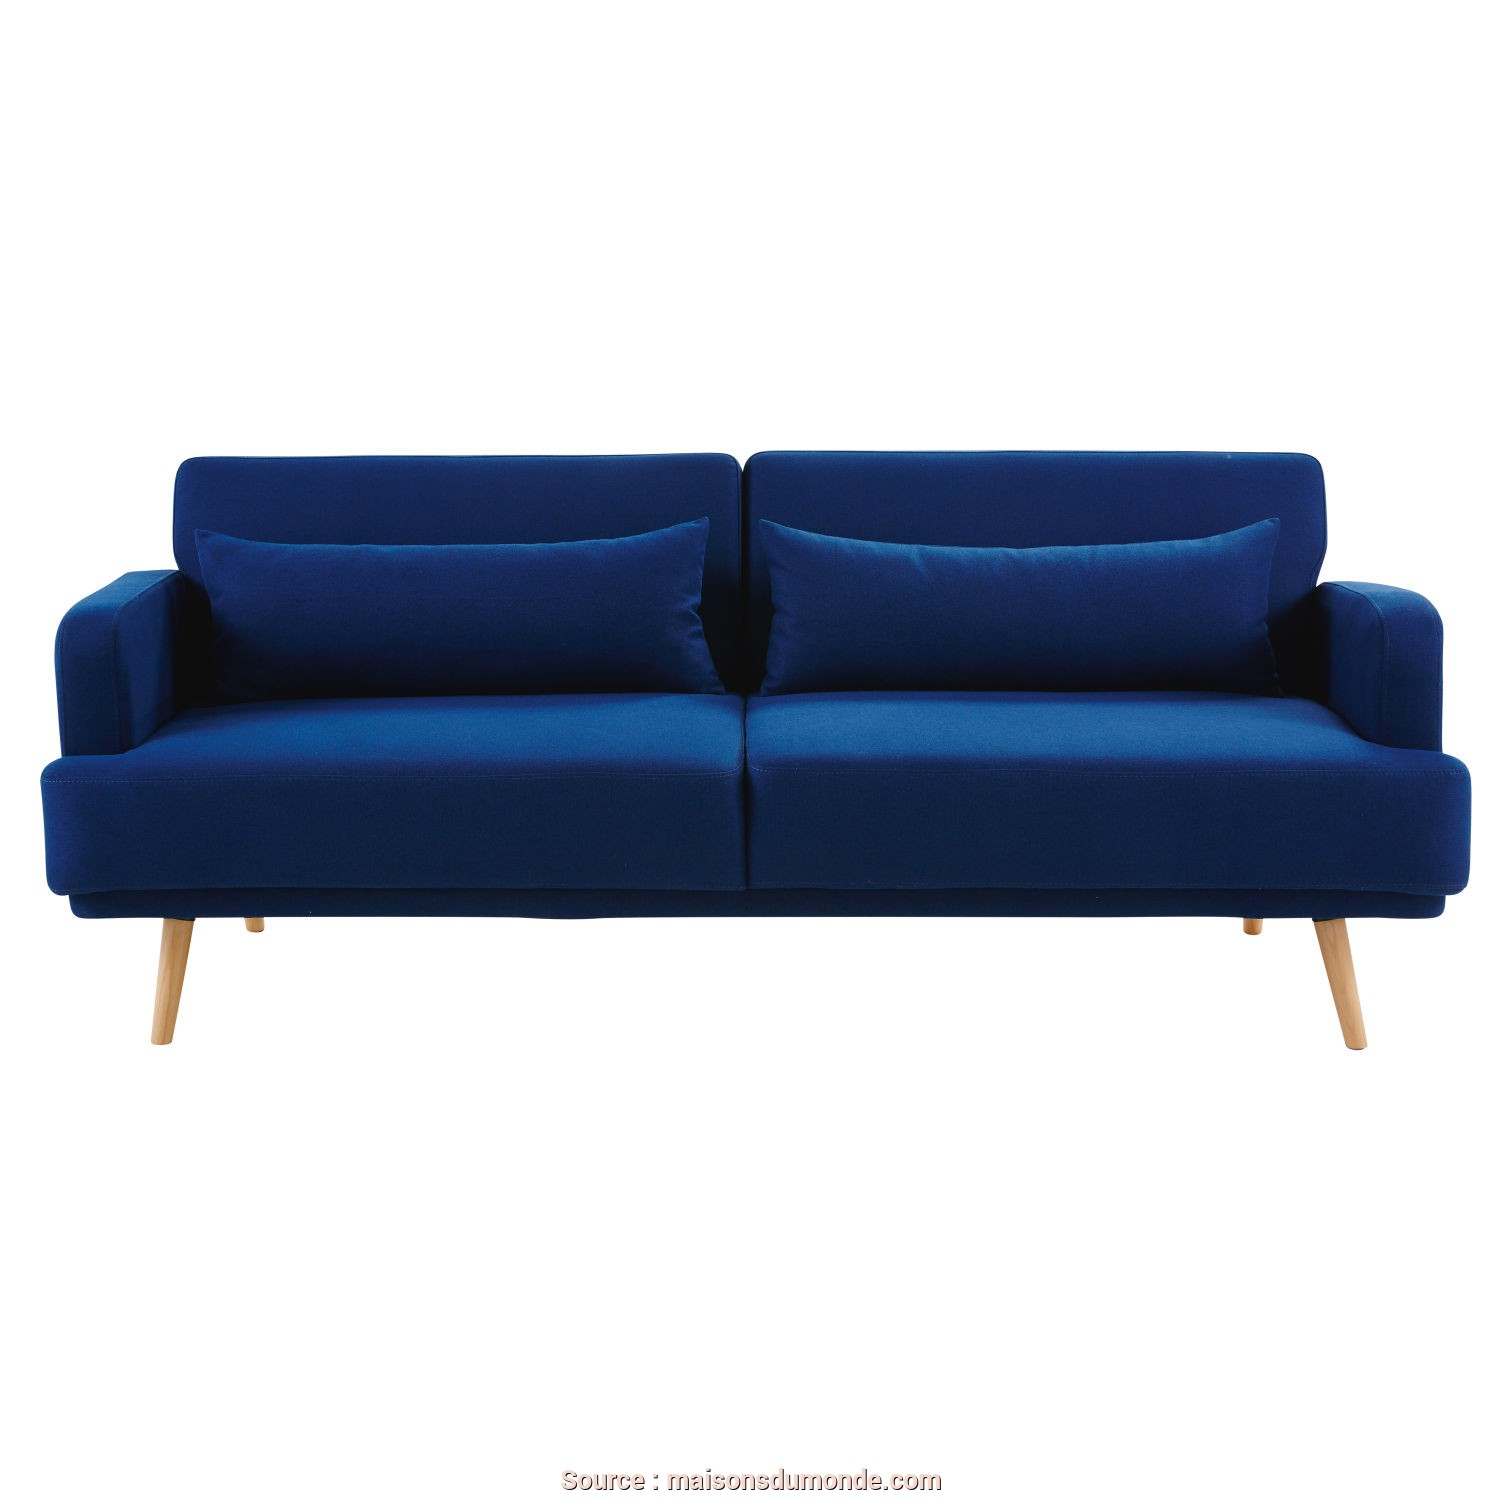 La Maison Du Monde Divano Letto, Superiore Royal Blue 3-Seater Sofa Bed, Maisons Du Monde